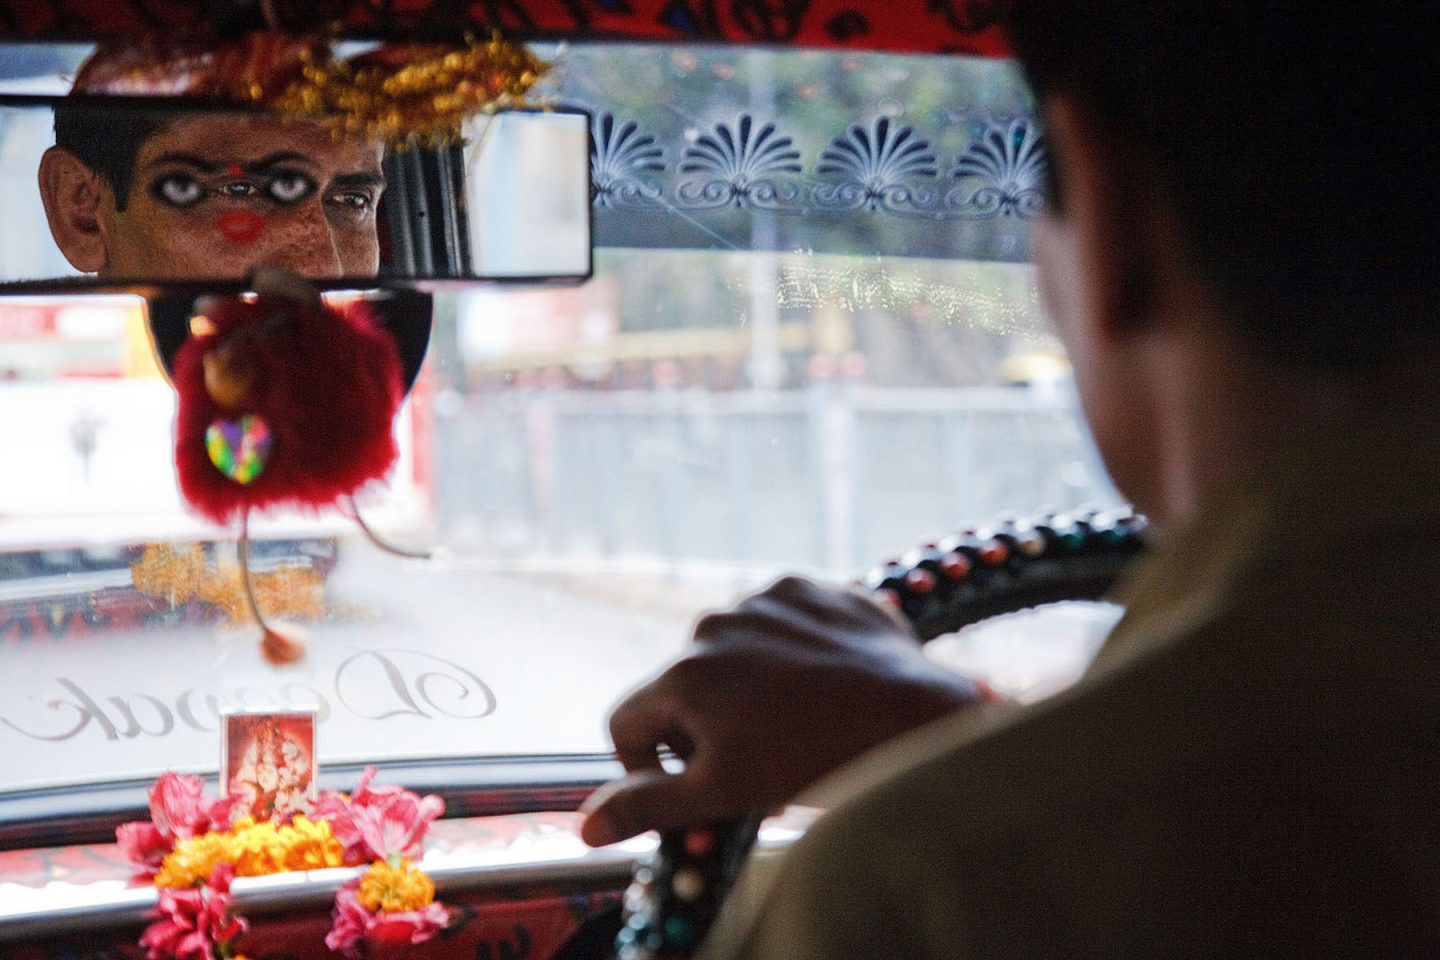 A taxi ride in Mumbai, India.